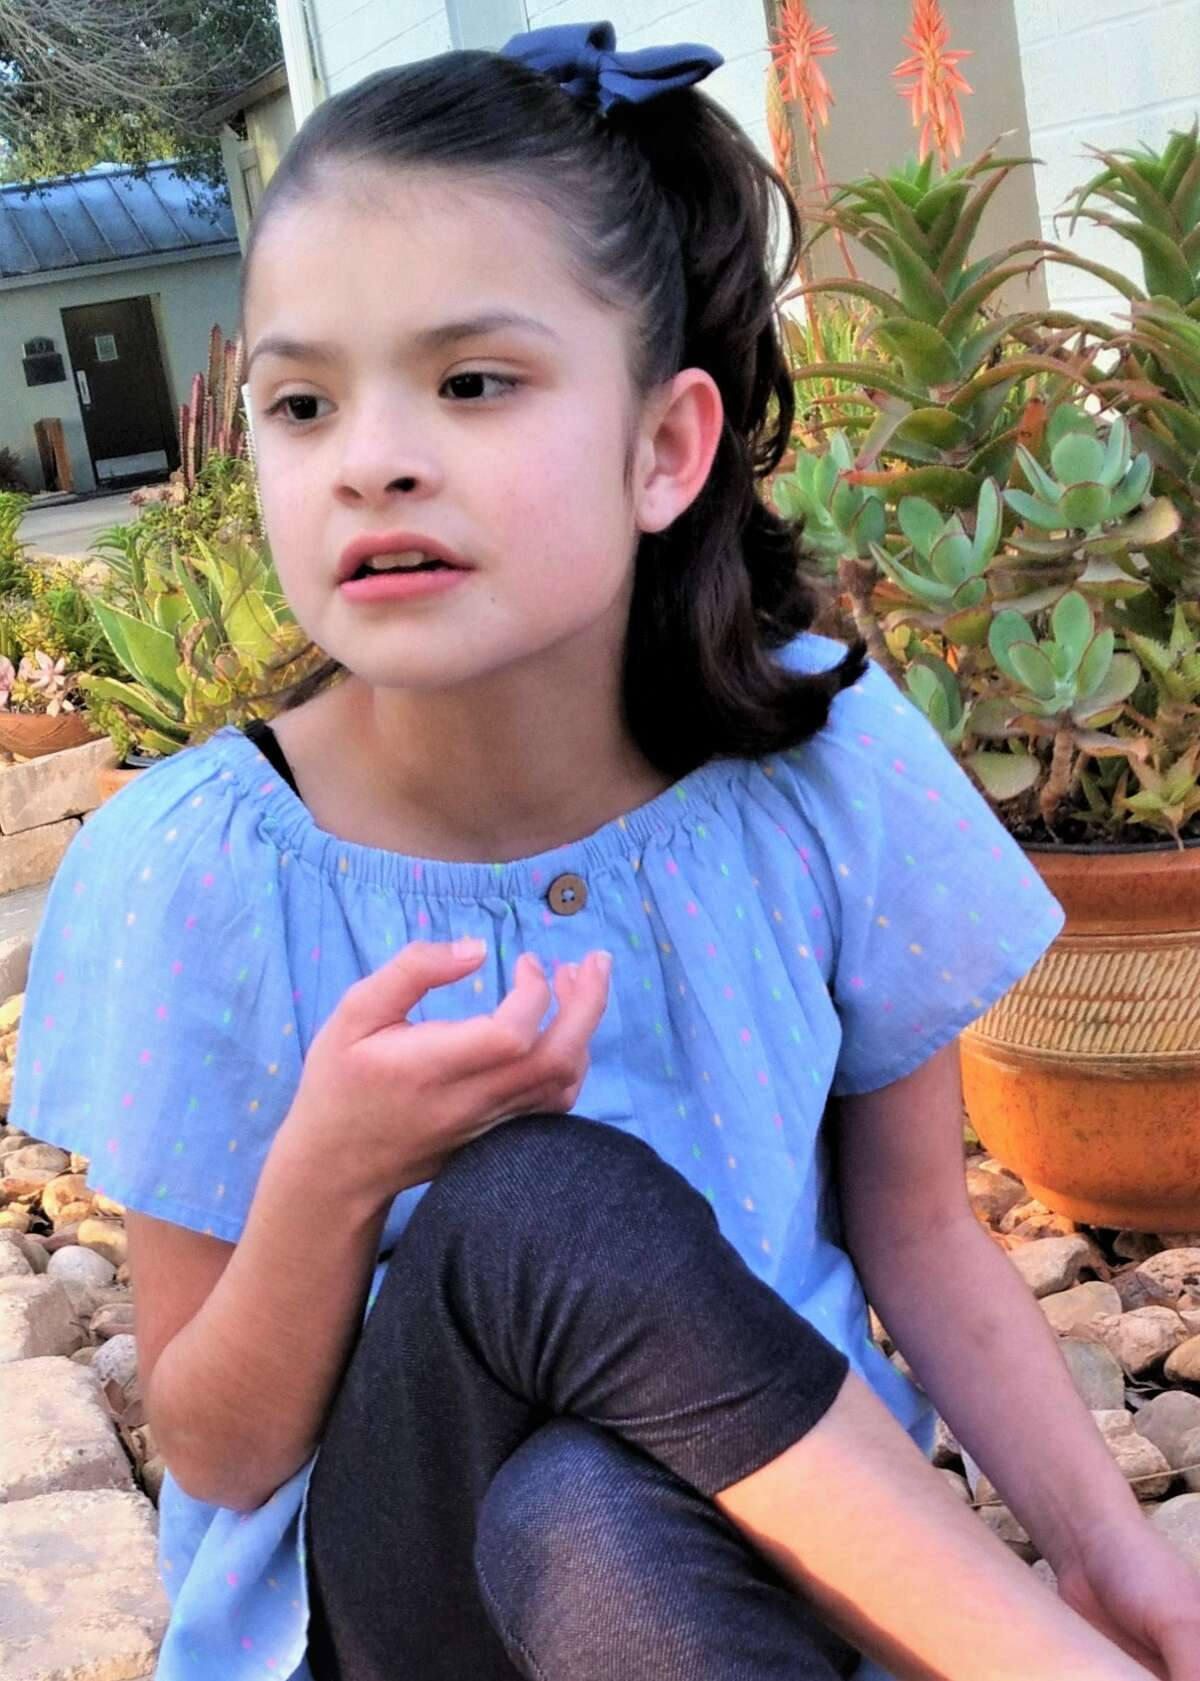 Hailey is a curious and playful 11-year-old girl. Hailey is one of the children listed on the Texas Adoption Resource Exchange (TARE) website.